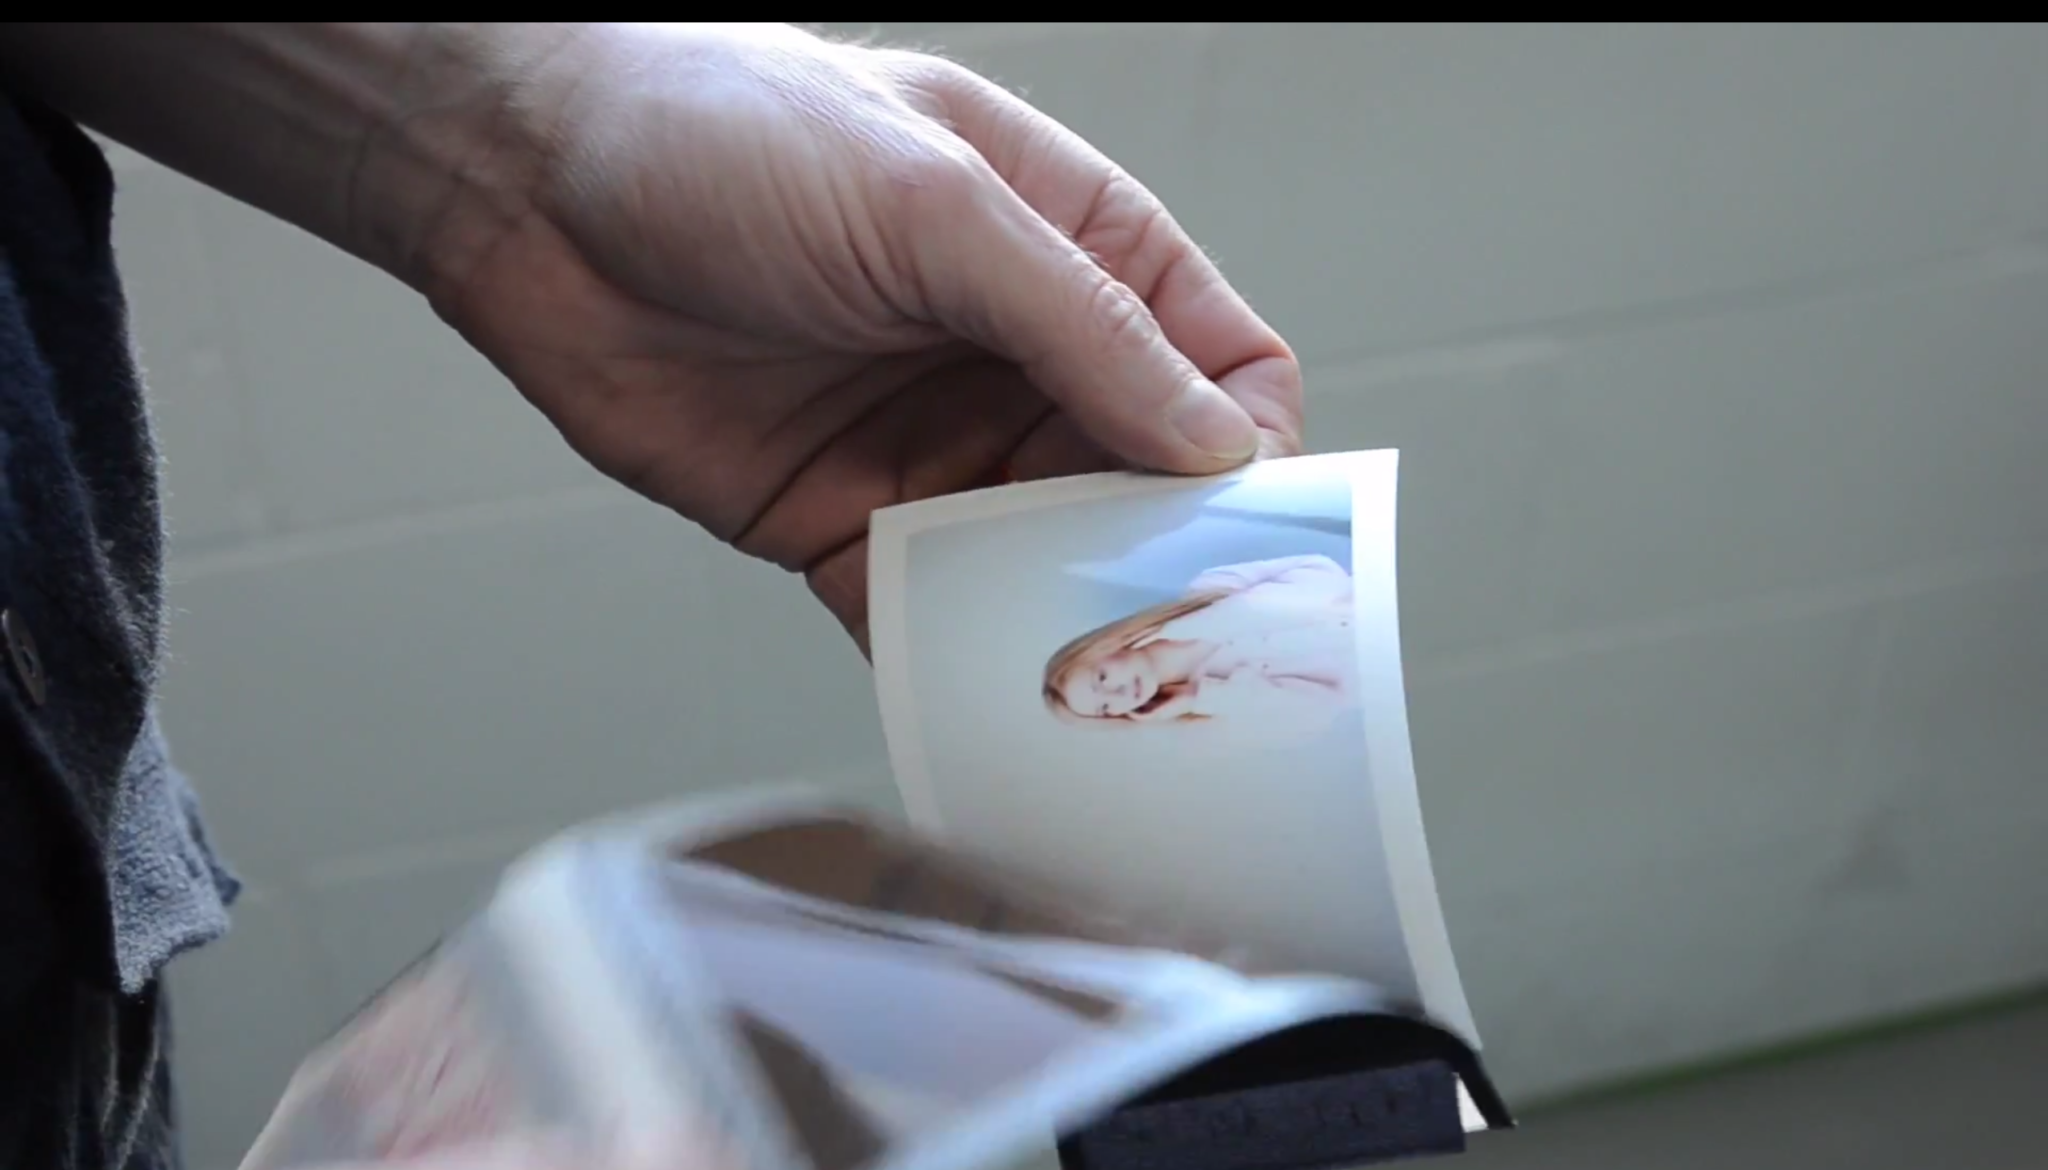 Watch a Polaroid Camera Modified for 4x5 Shoot Instant Film - The Phoblographer